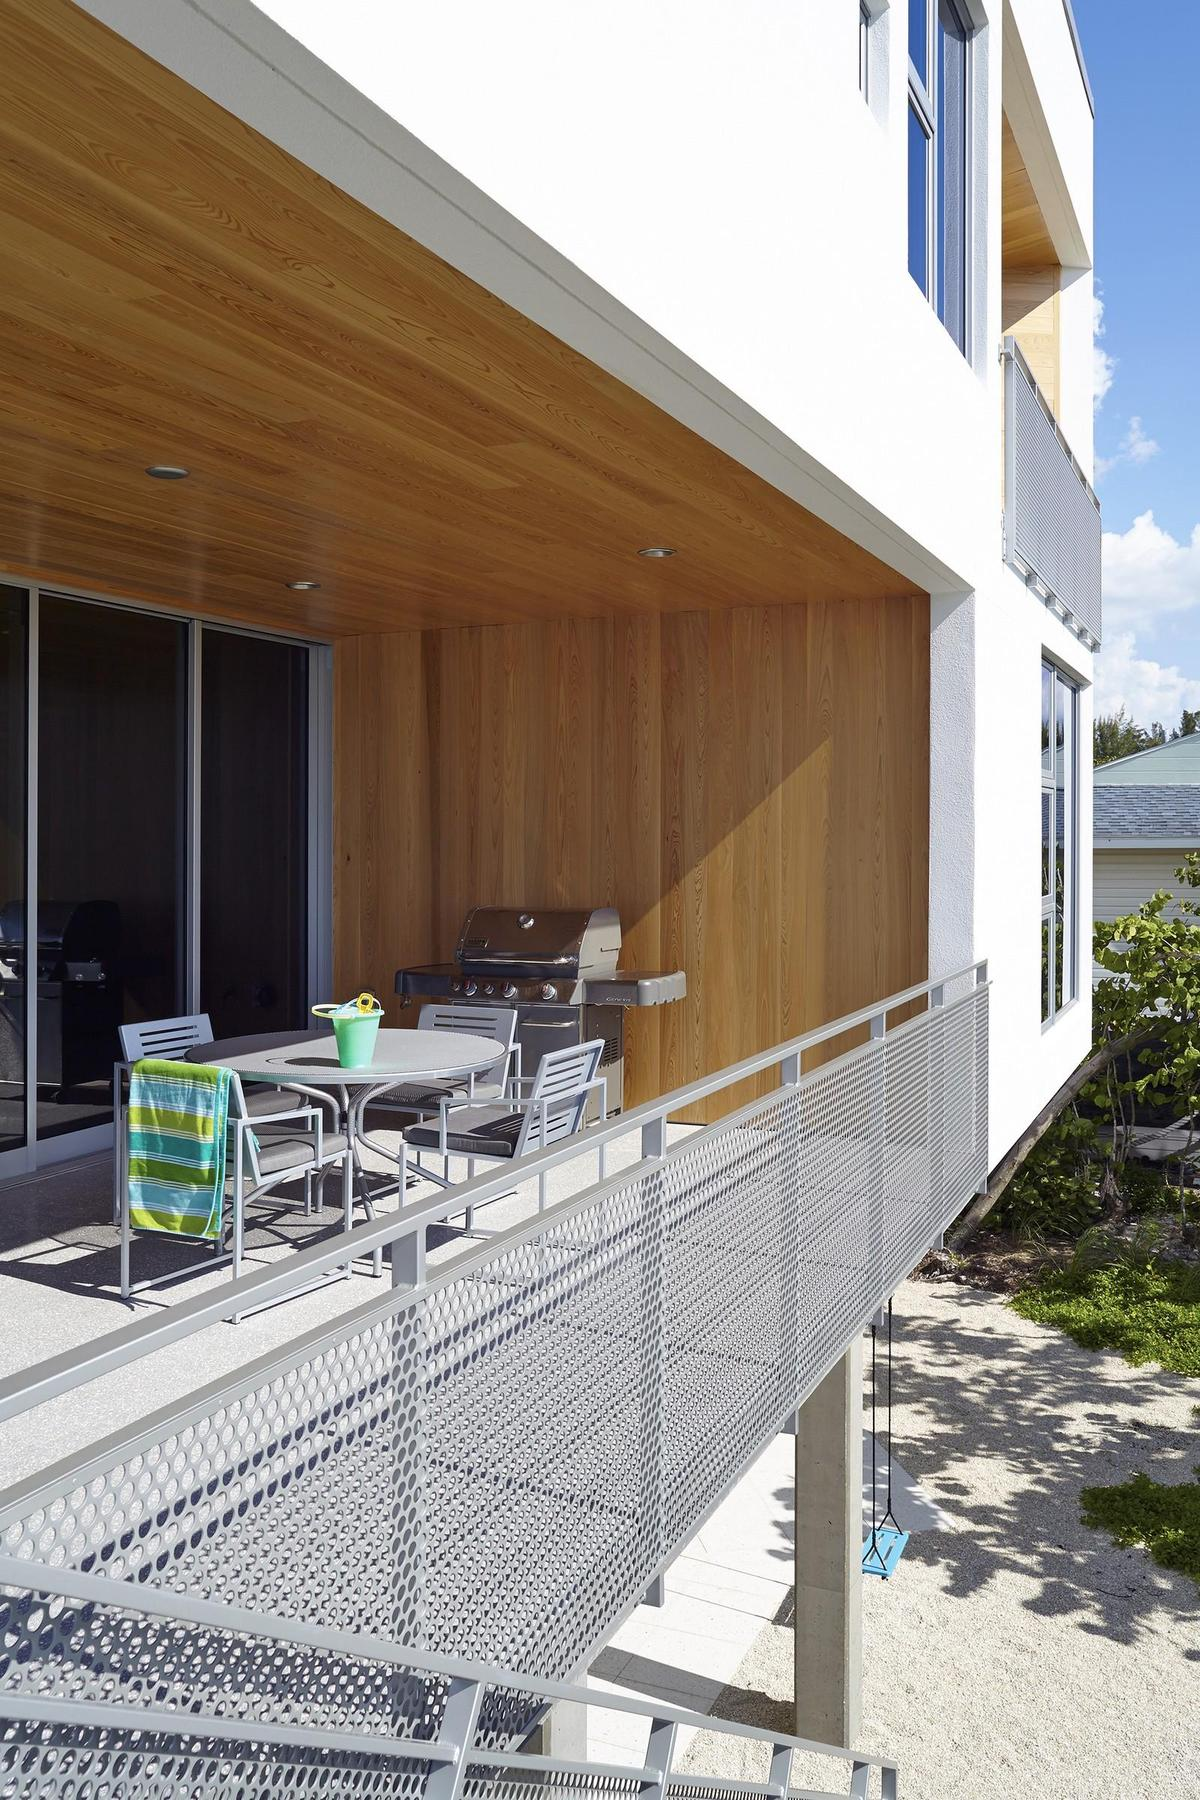 Beachfront House Built with Poured Concrete to Withstand Hurricanes